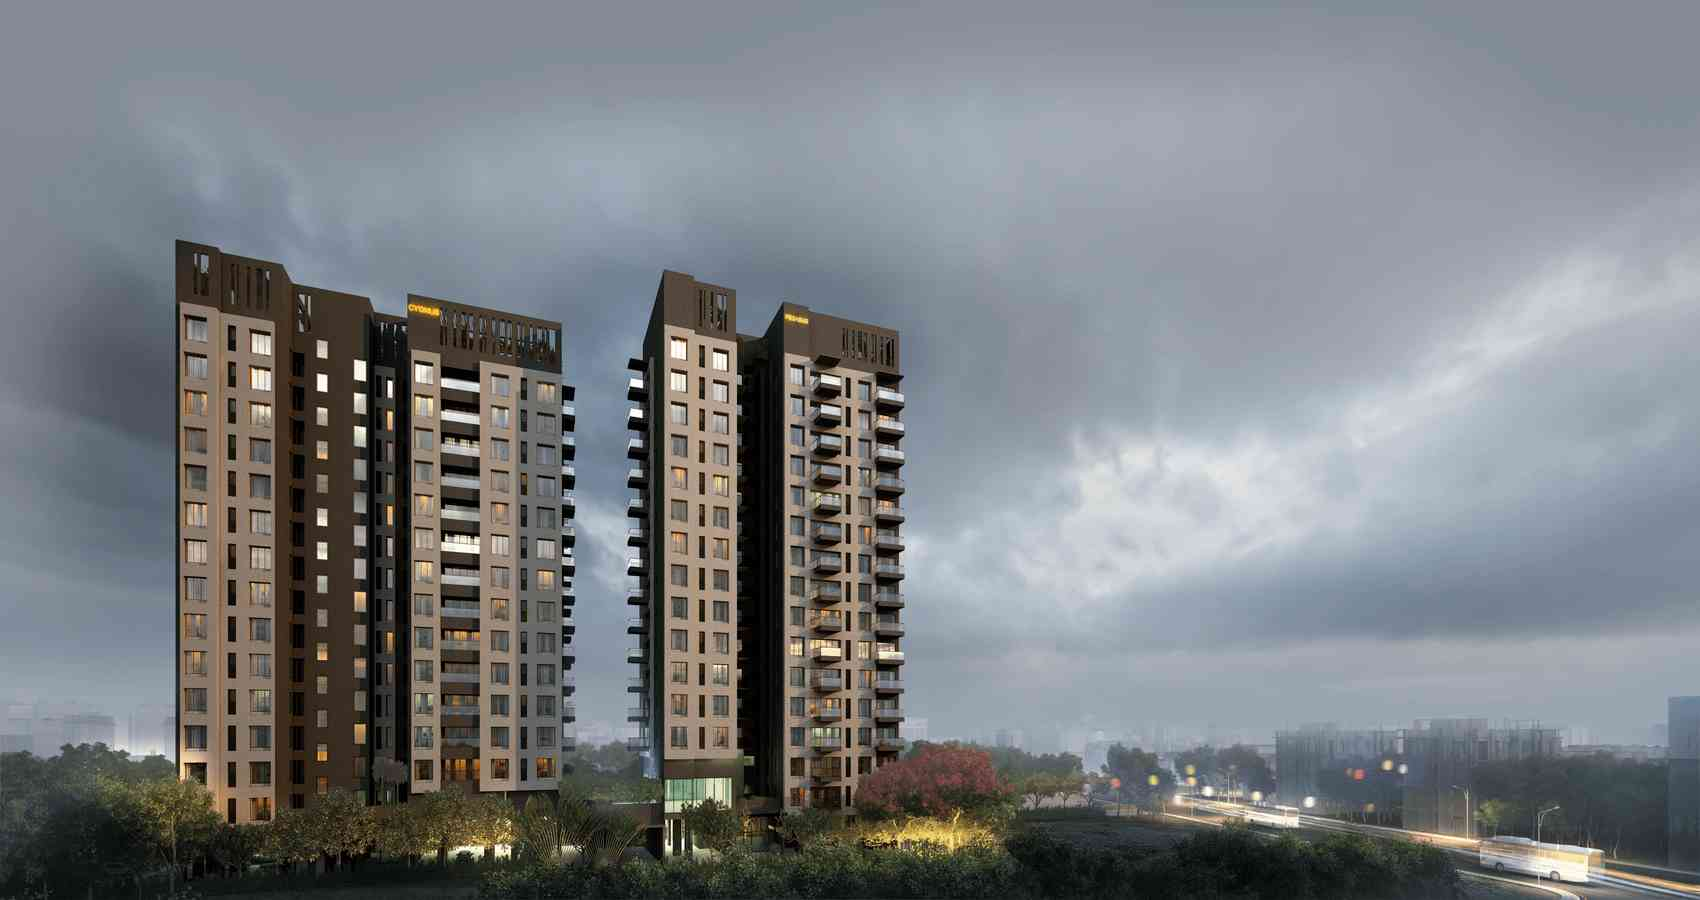 Highrise apartment of Darpan 88° with the thundering clouds